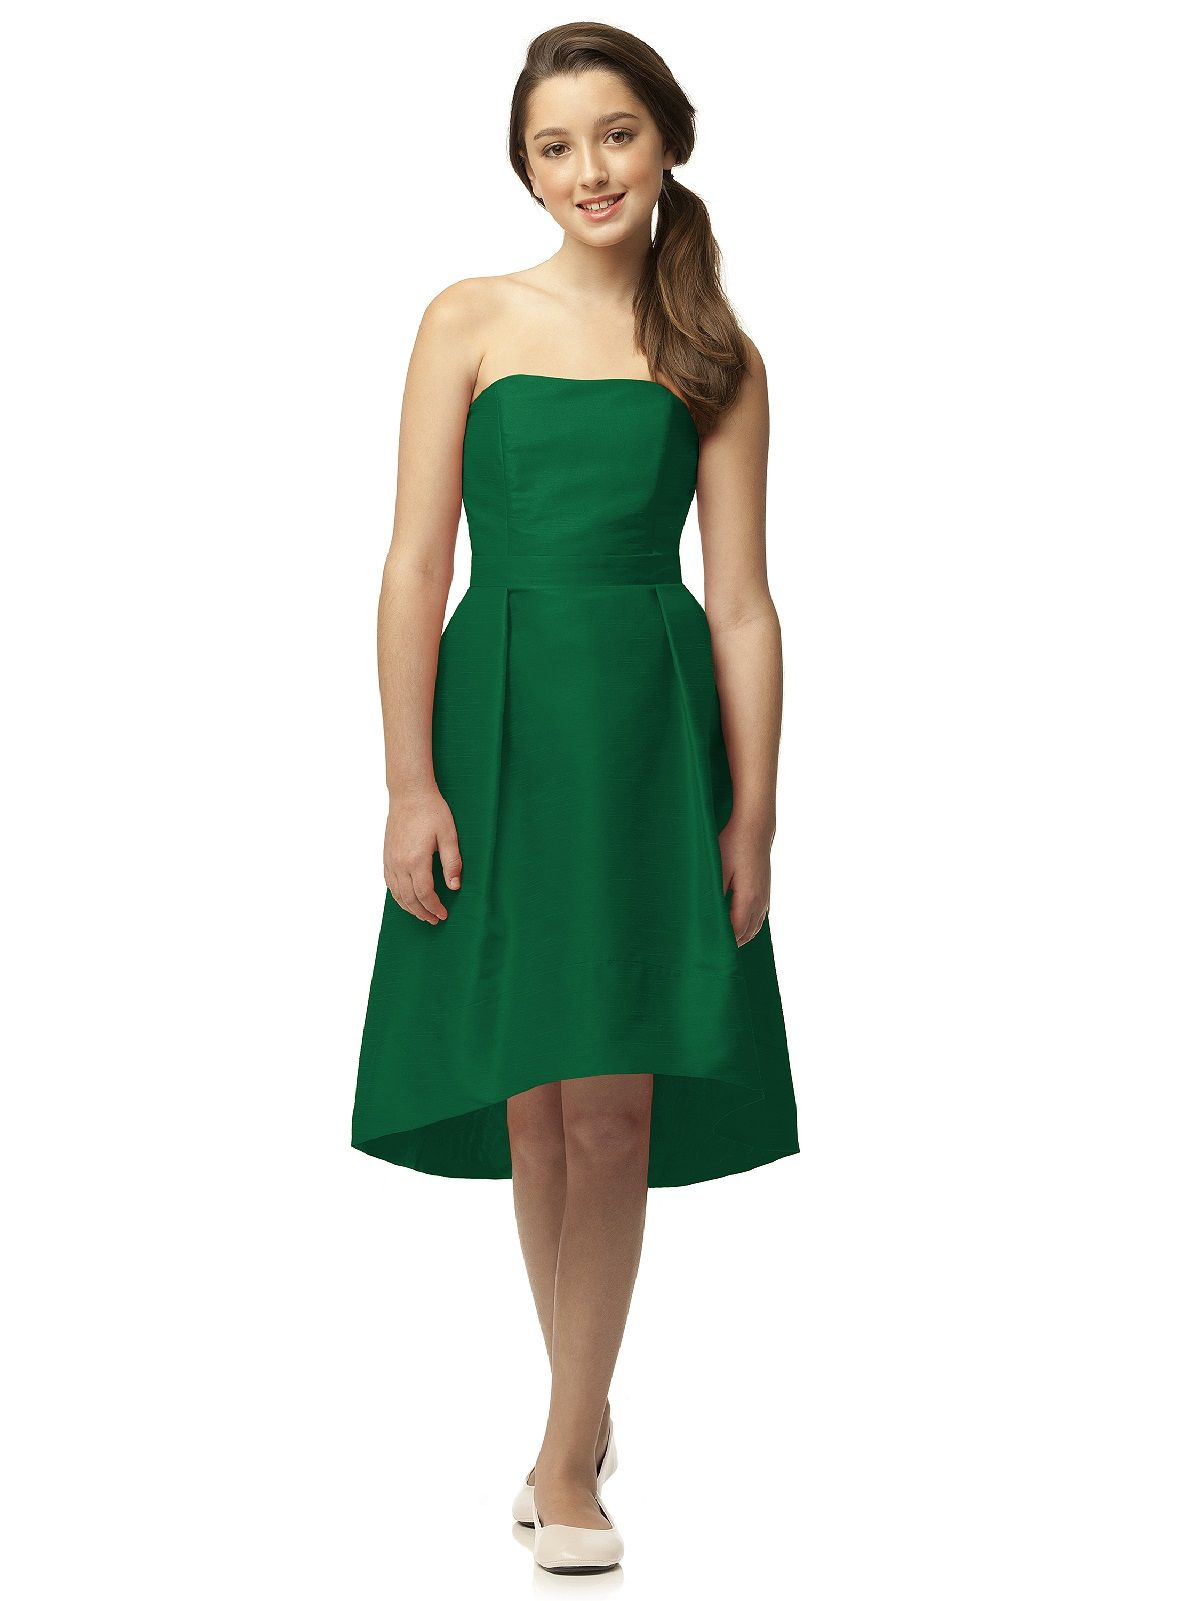 Green Junior Bridesmaid Dresses | Top 50 Junior and Childrens ...